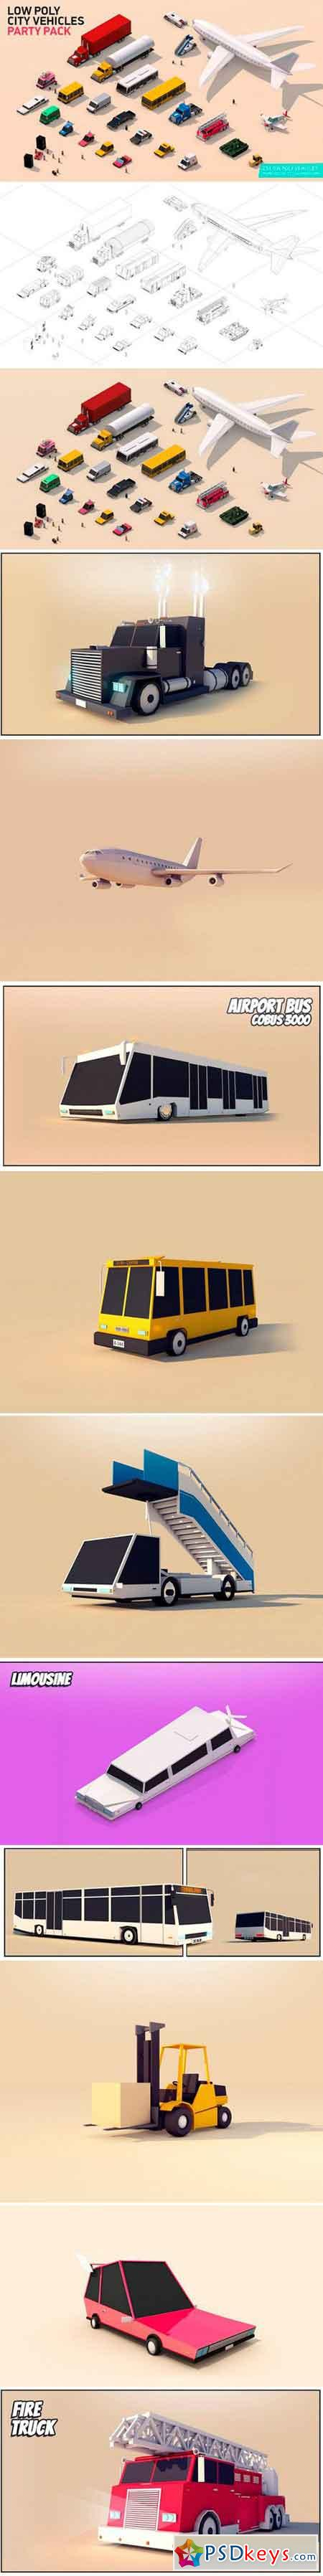 Low Poly City Cars Vehicles Pack 1550794